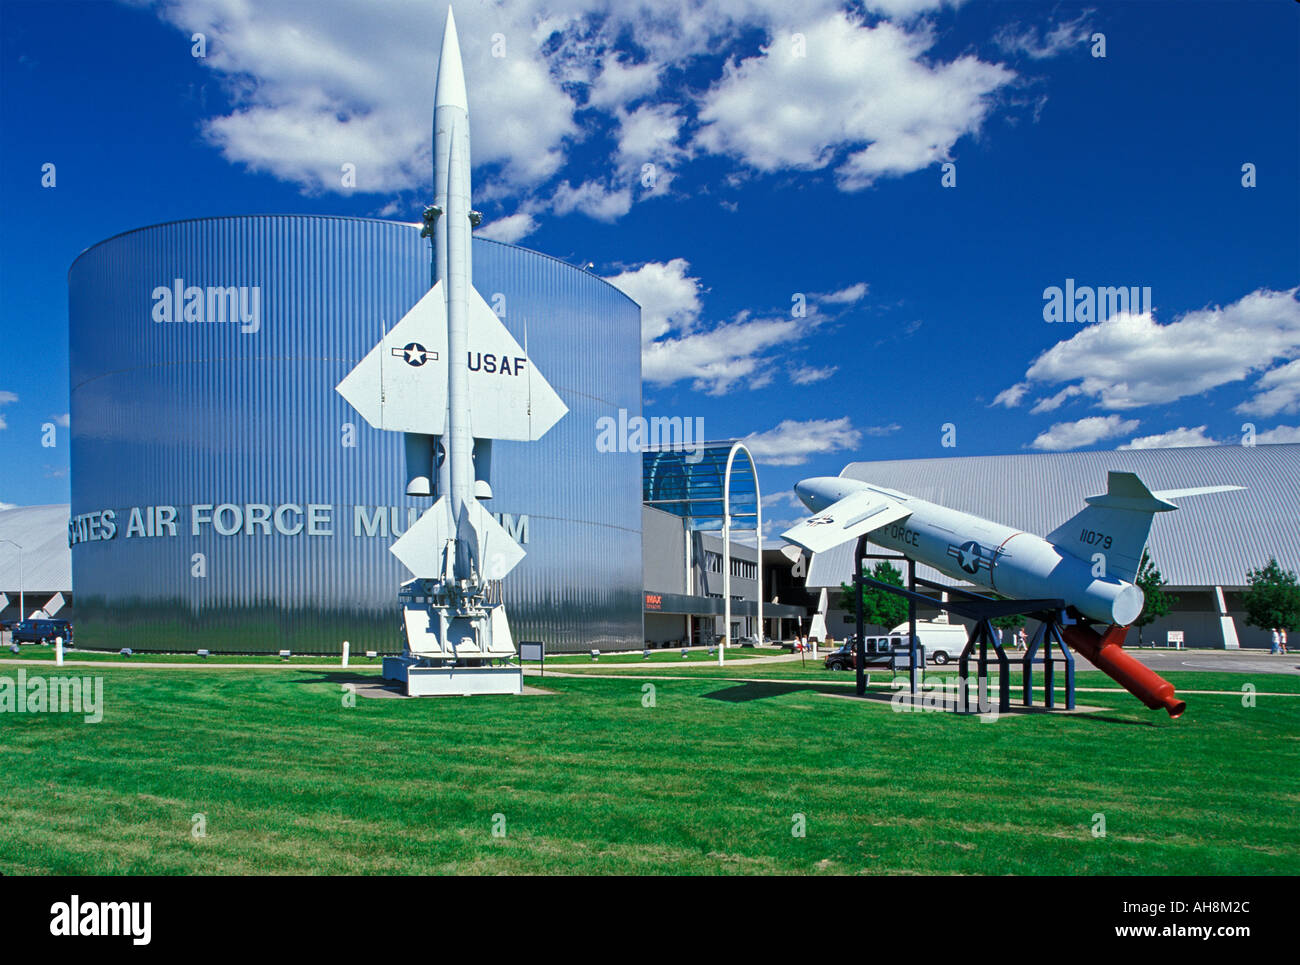 United States Airforce Museum located at Wright Patterson Airforce Base Dayton Ohio - Stock Image